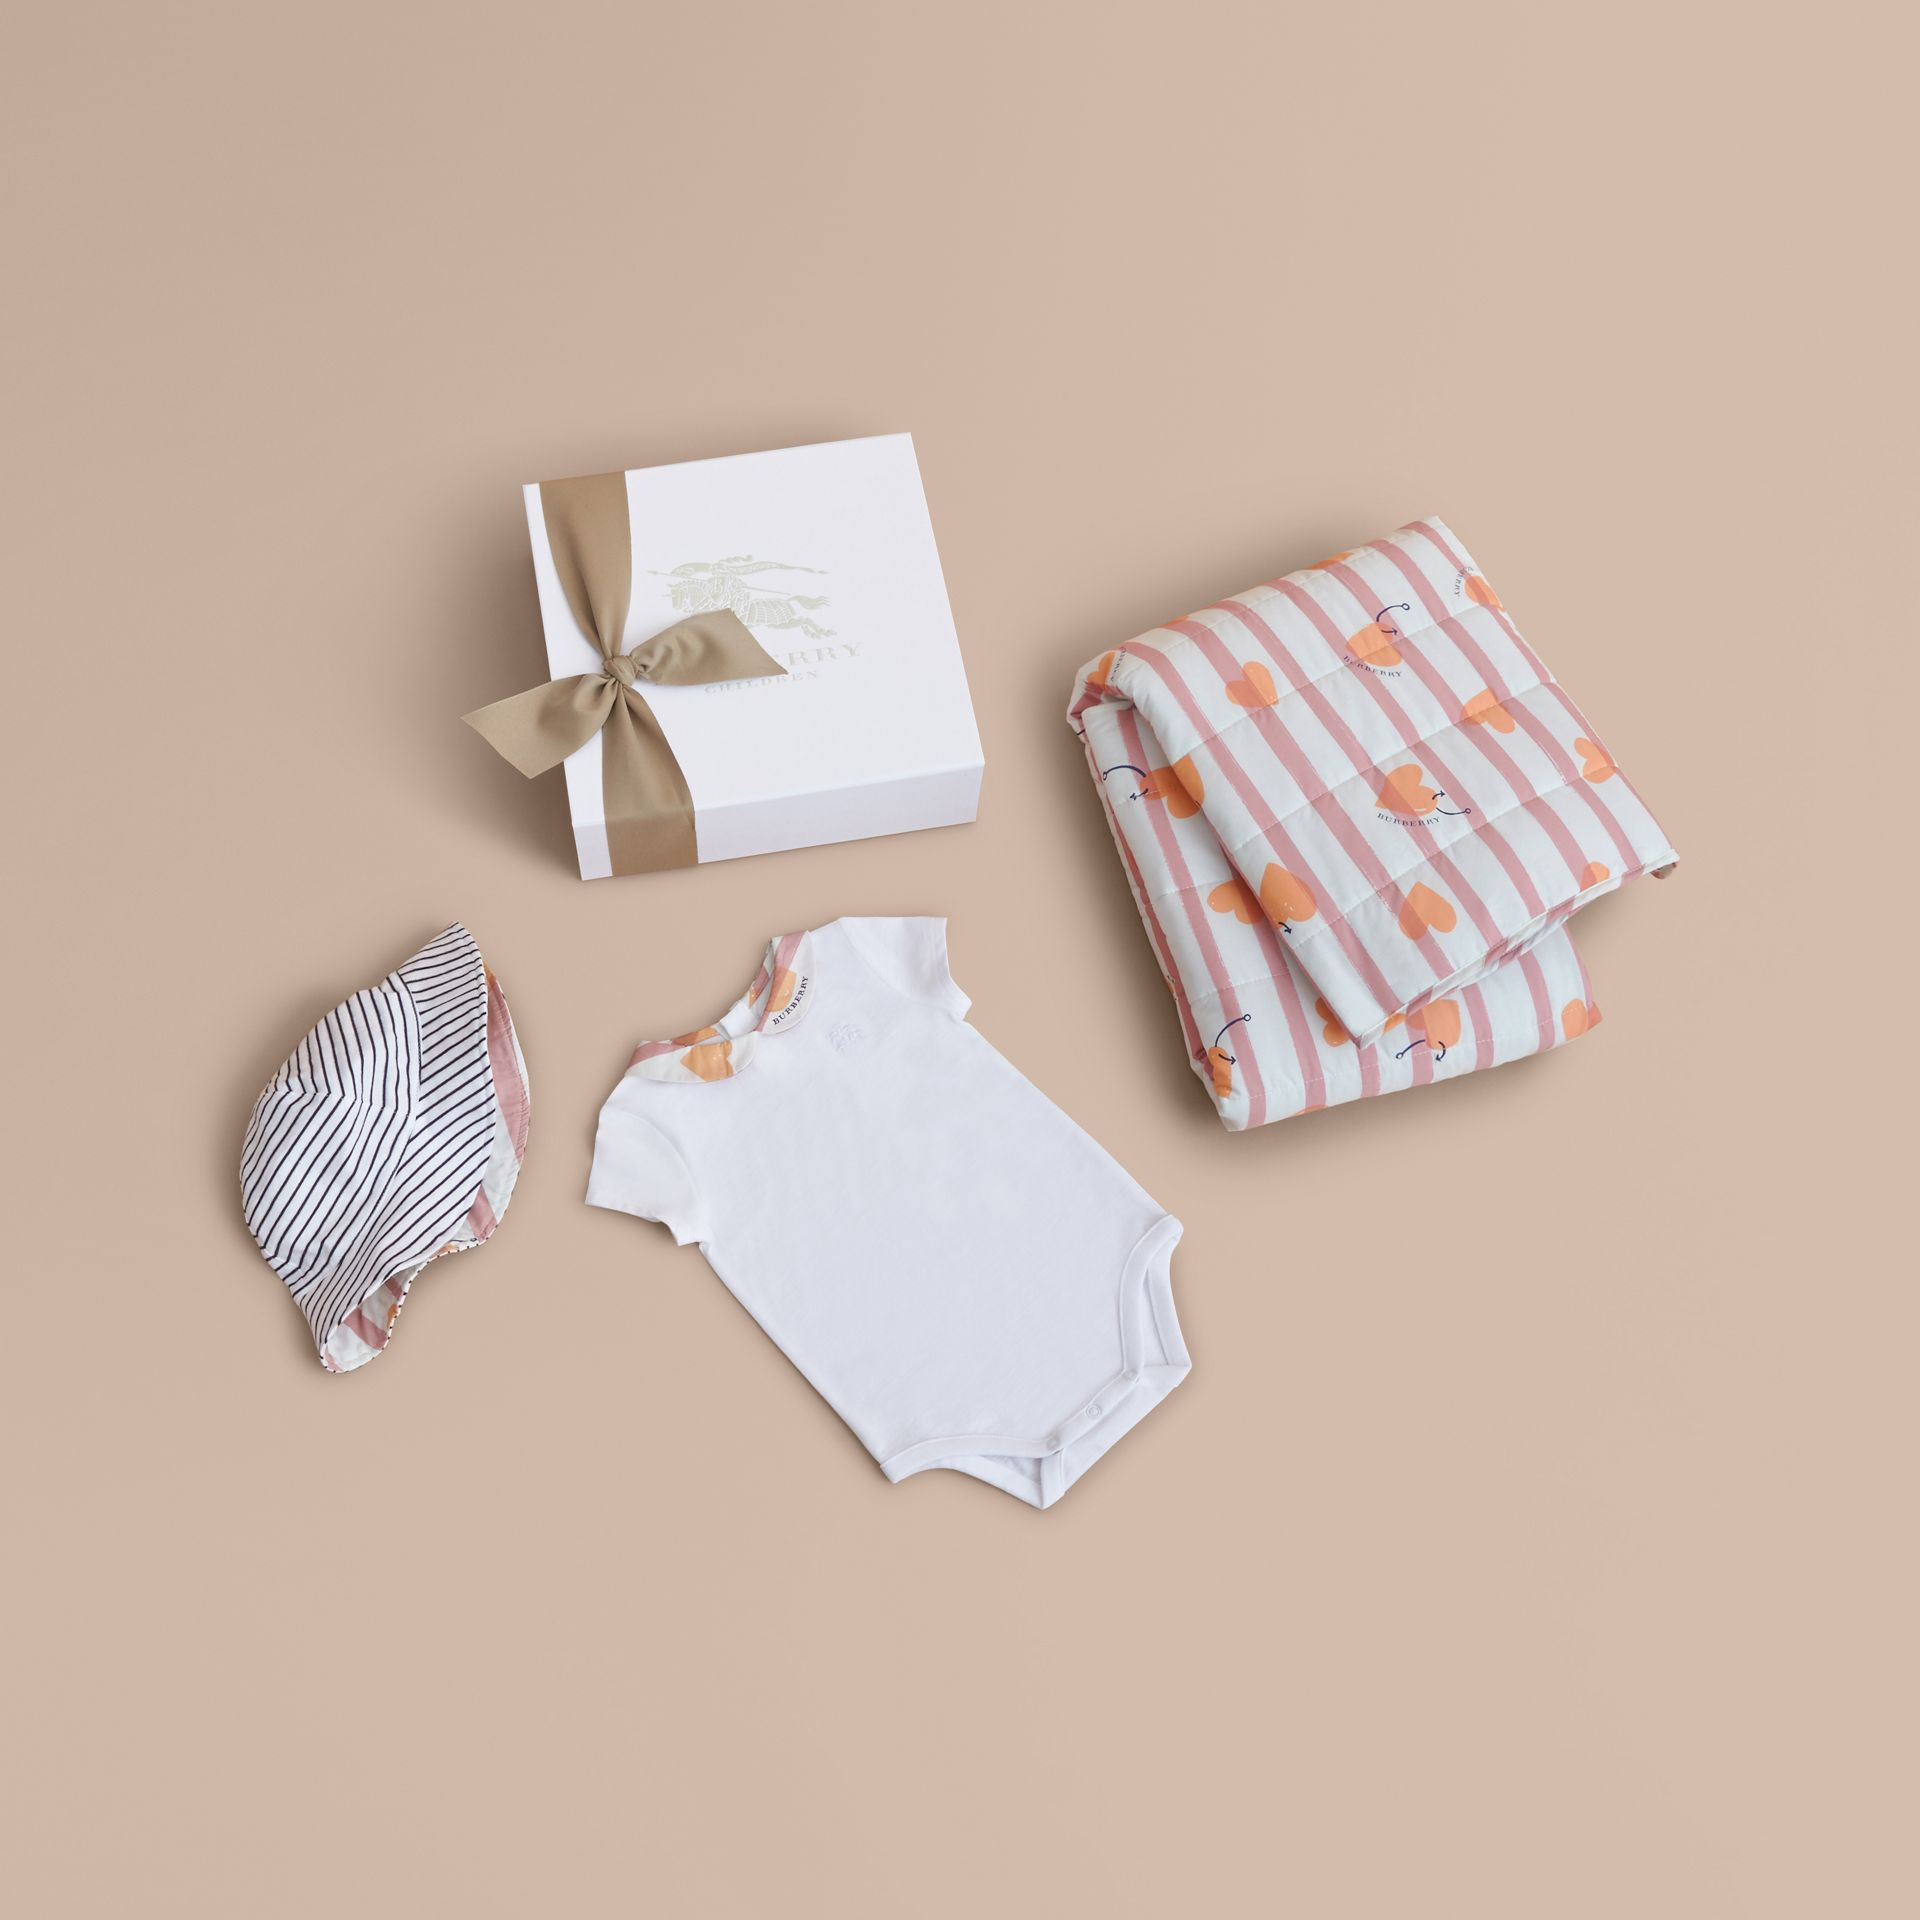 Hooked Heart Print Cotton Three-piece Baby Gift Set - gallery image 1